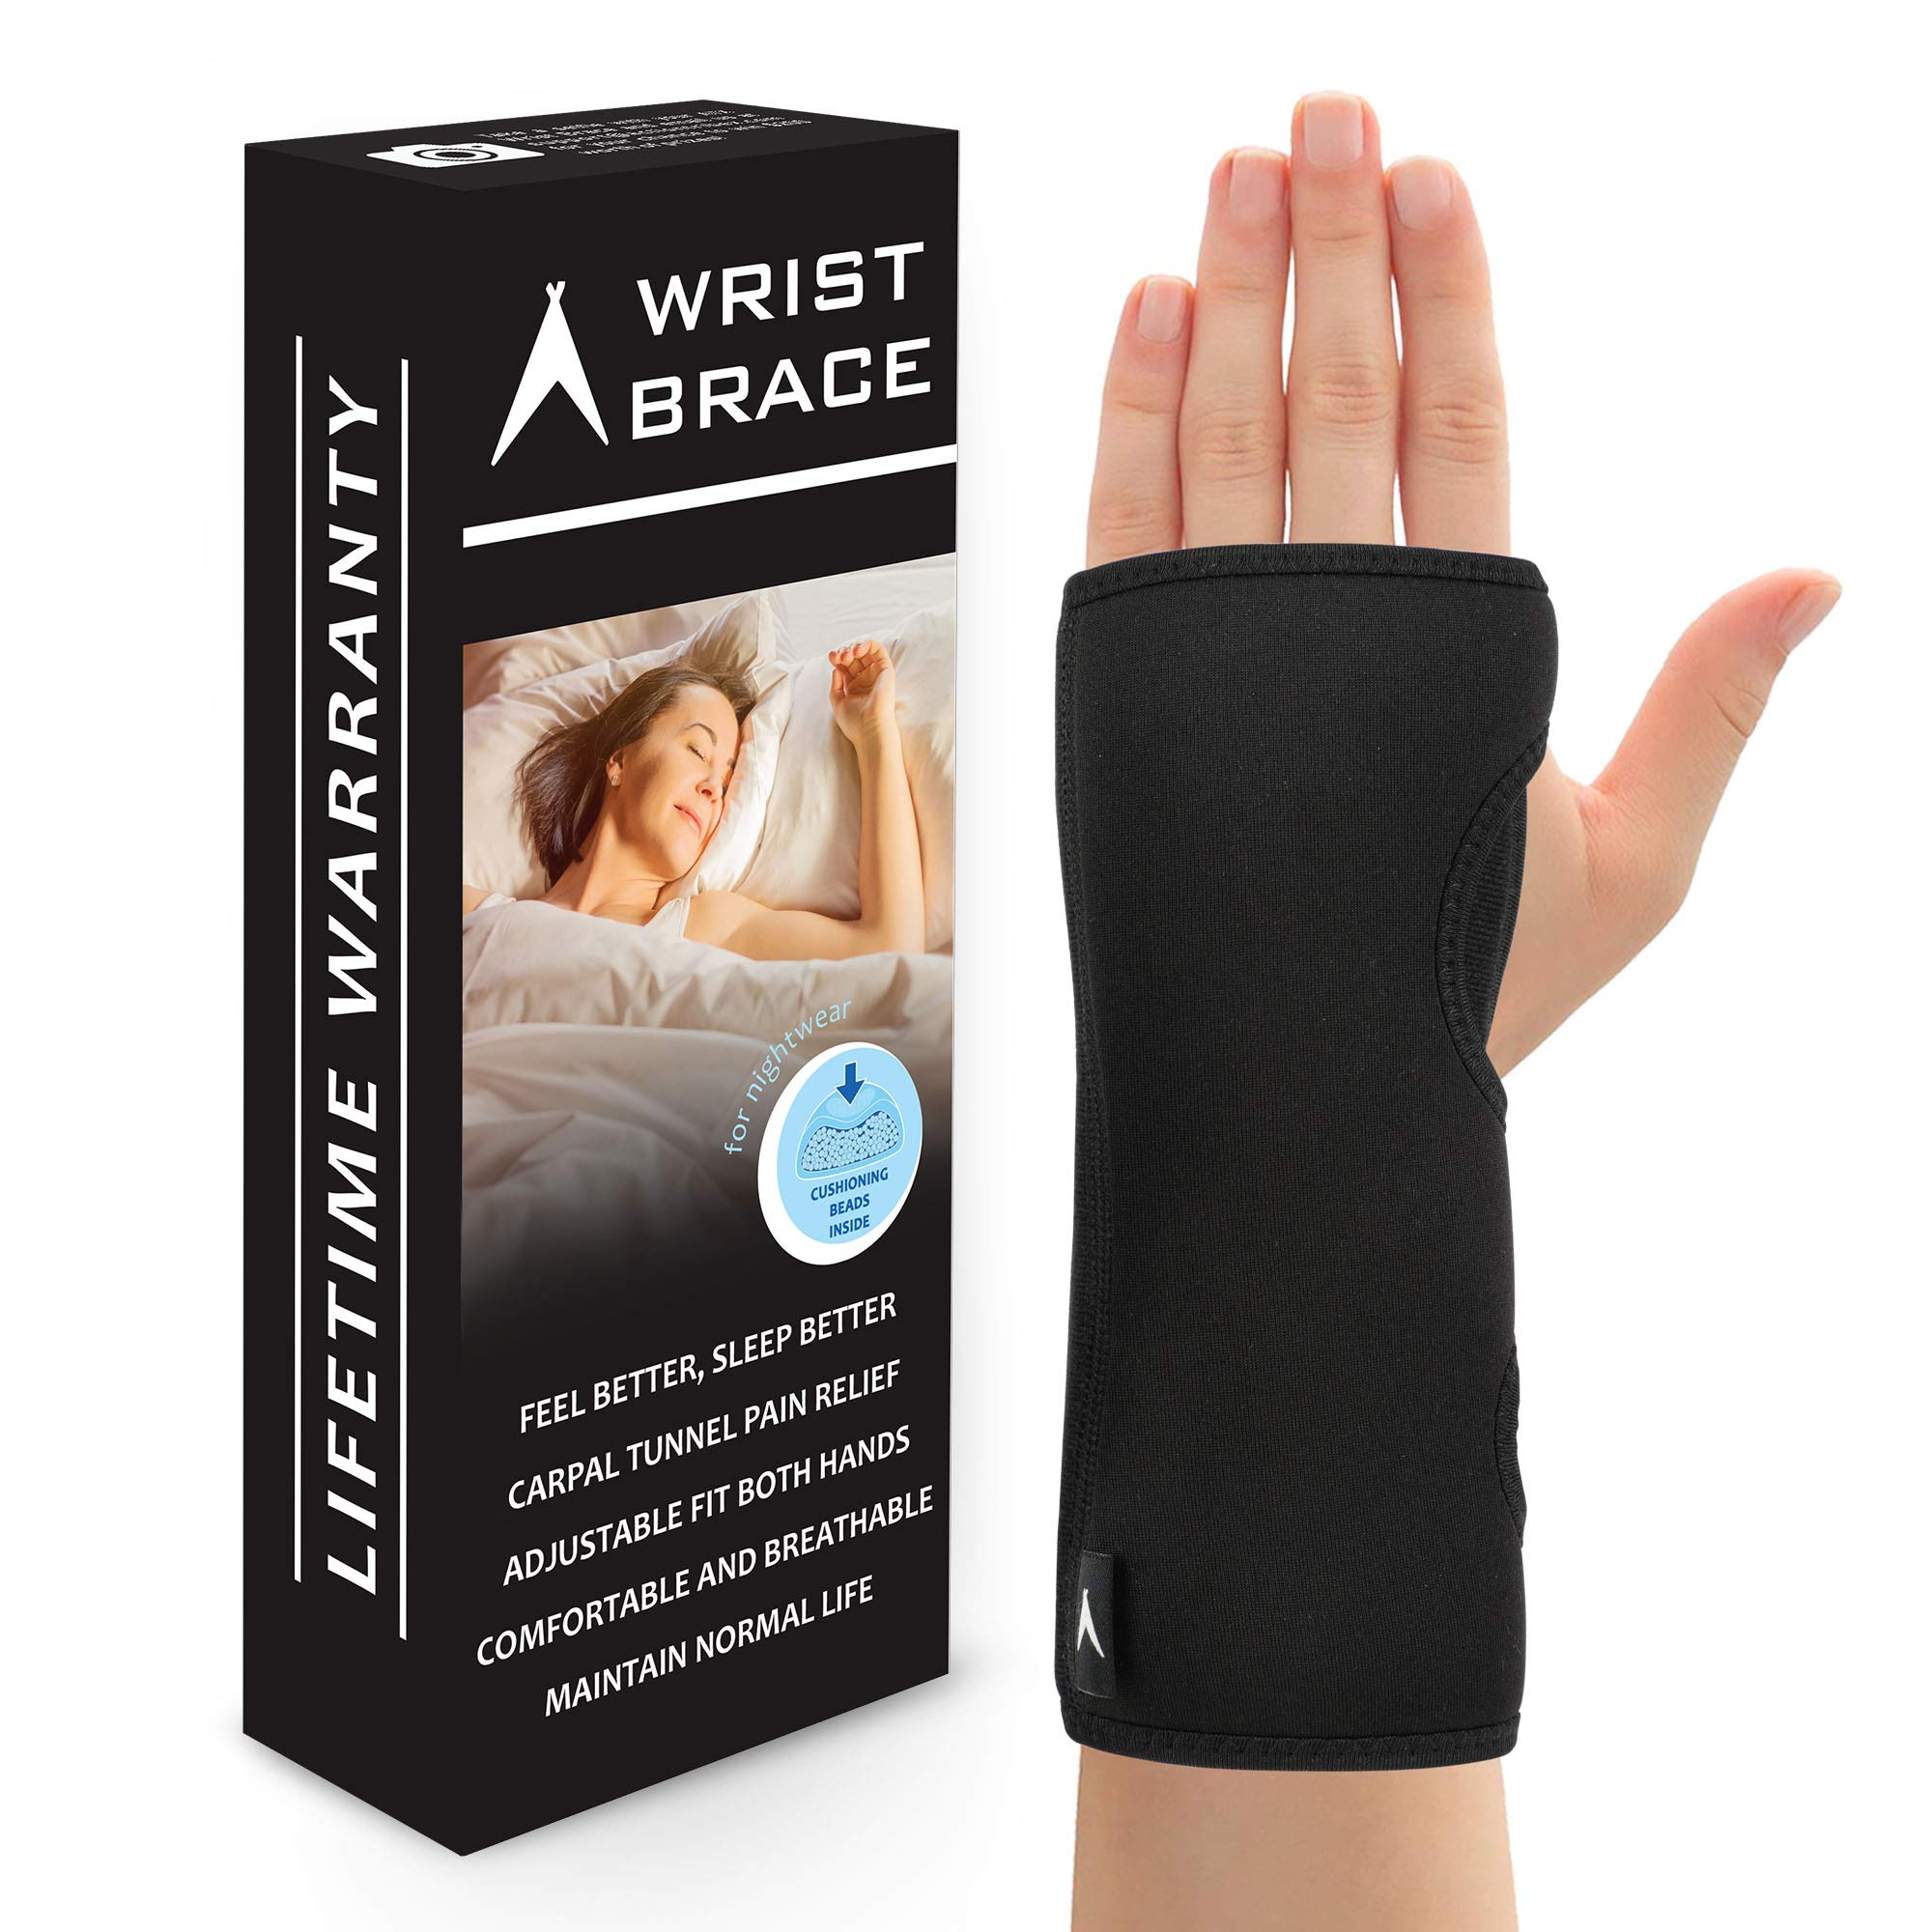 ATX Night Sleep Support Wrist Brace - Carpal Tunnel Relief - Fits Both Left & Right Hand - Removable Metal Splint and Cushioning Beads for Painless Sleep - Men and Women